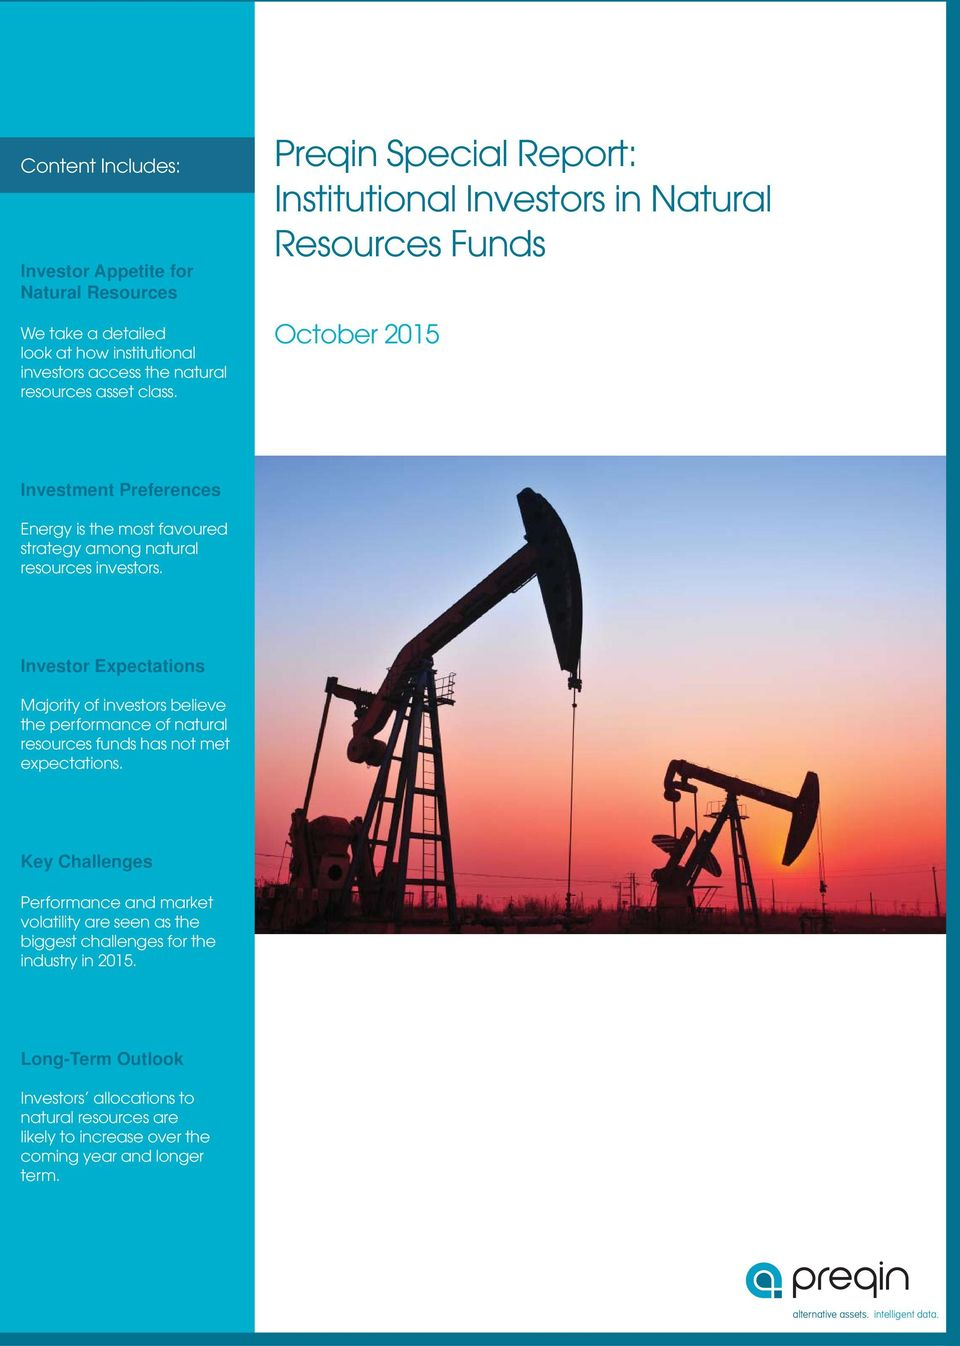 Investor Expectations Majority of investors believe the performance of natural resources funds has not met expectations.